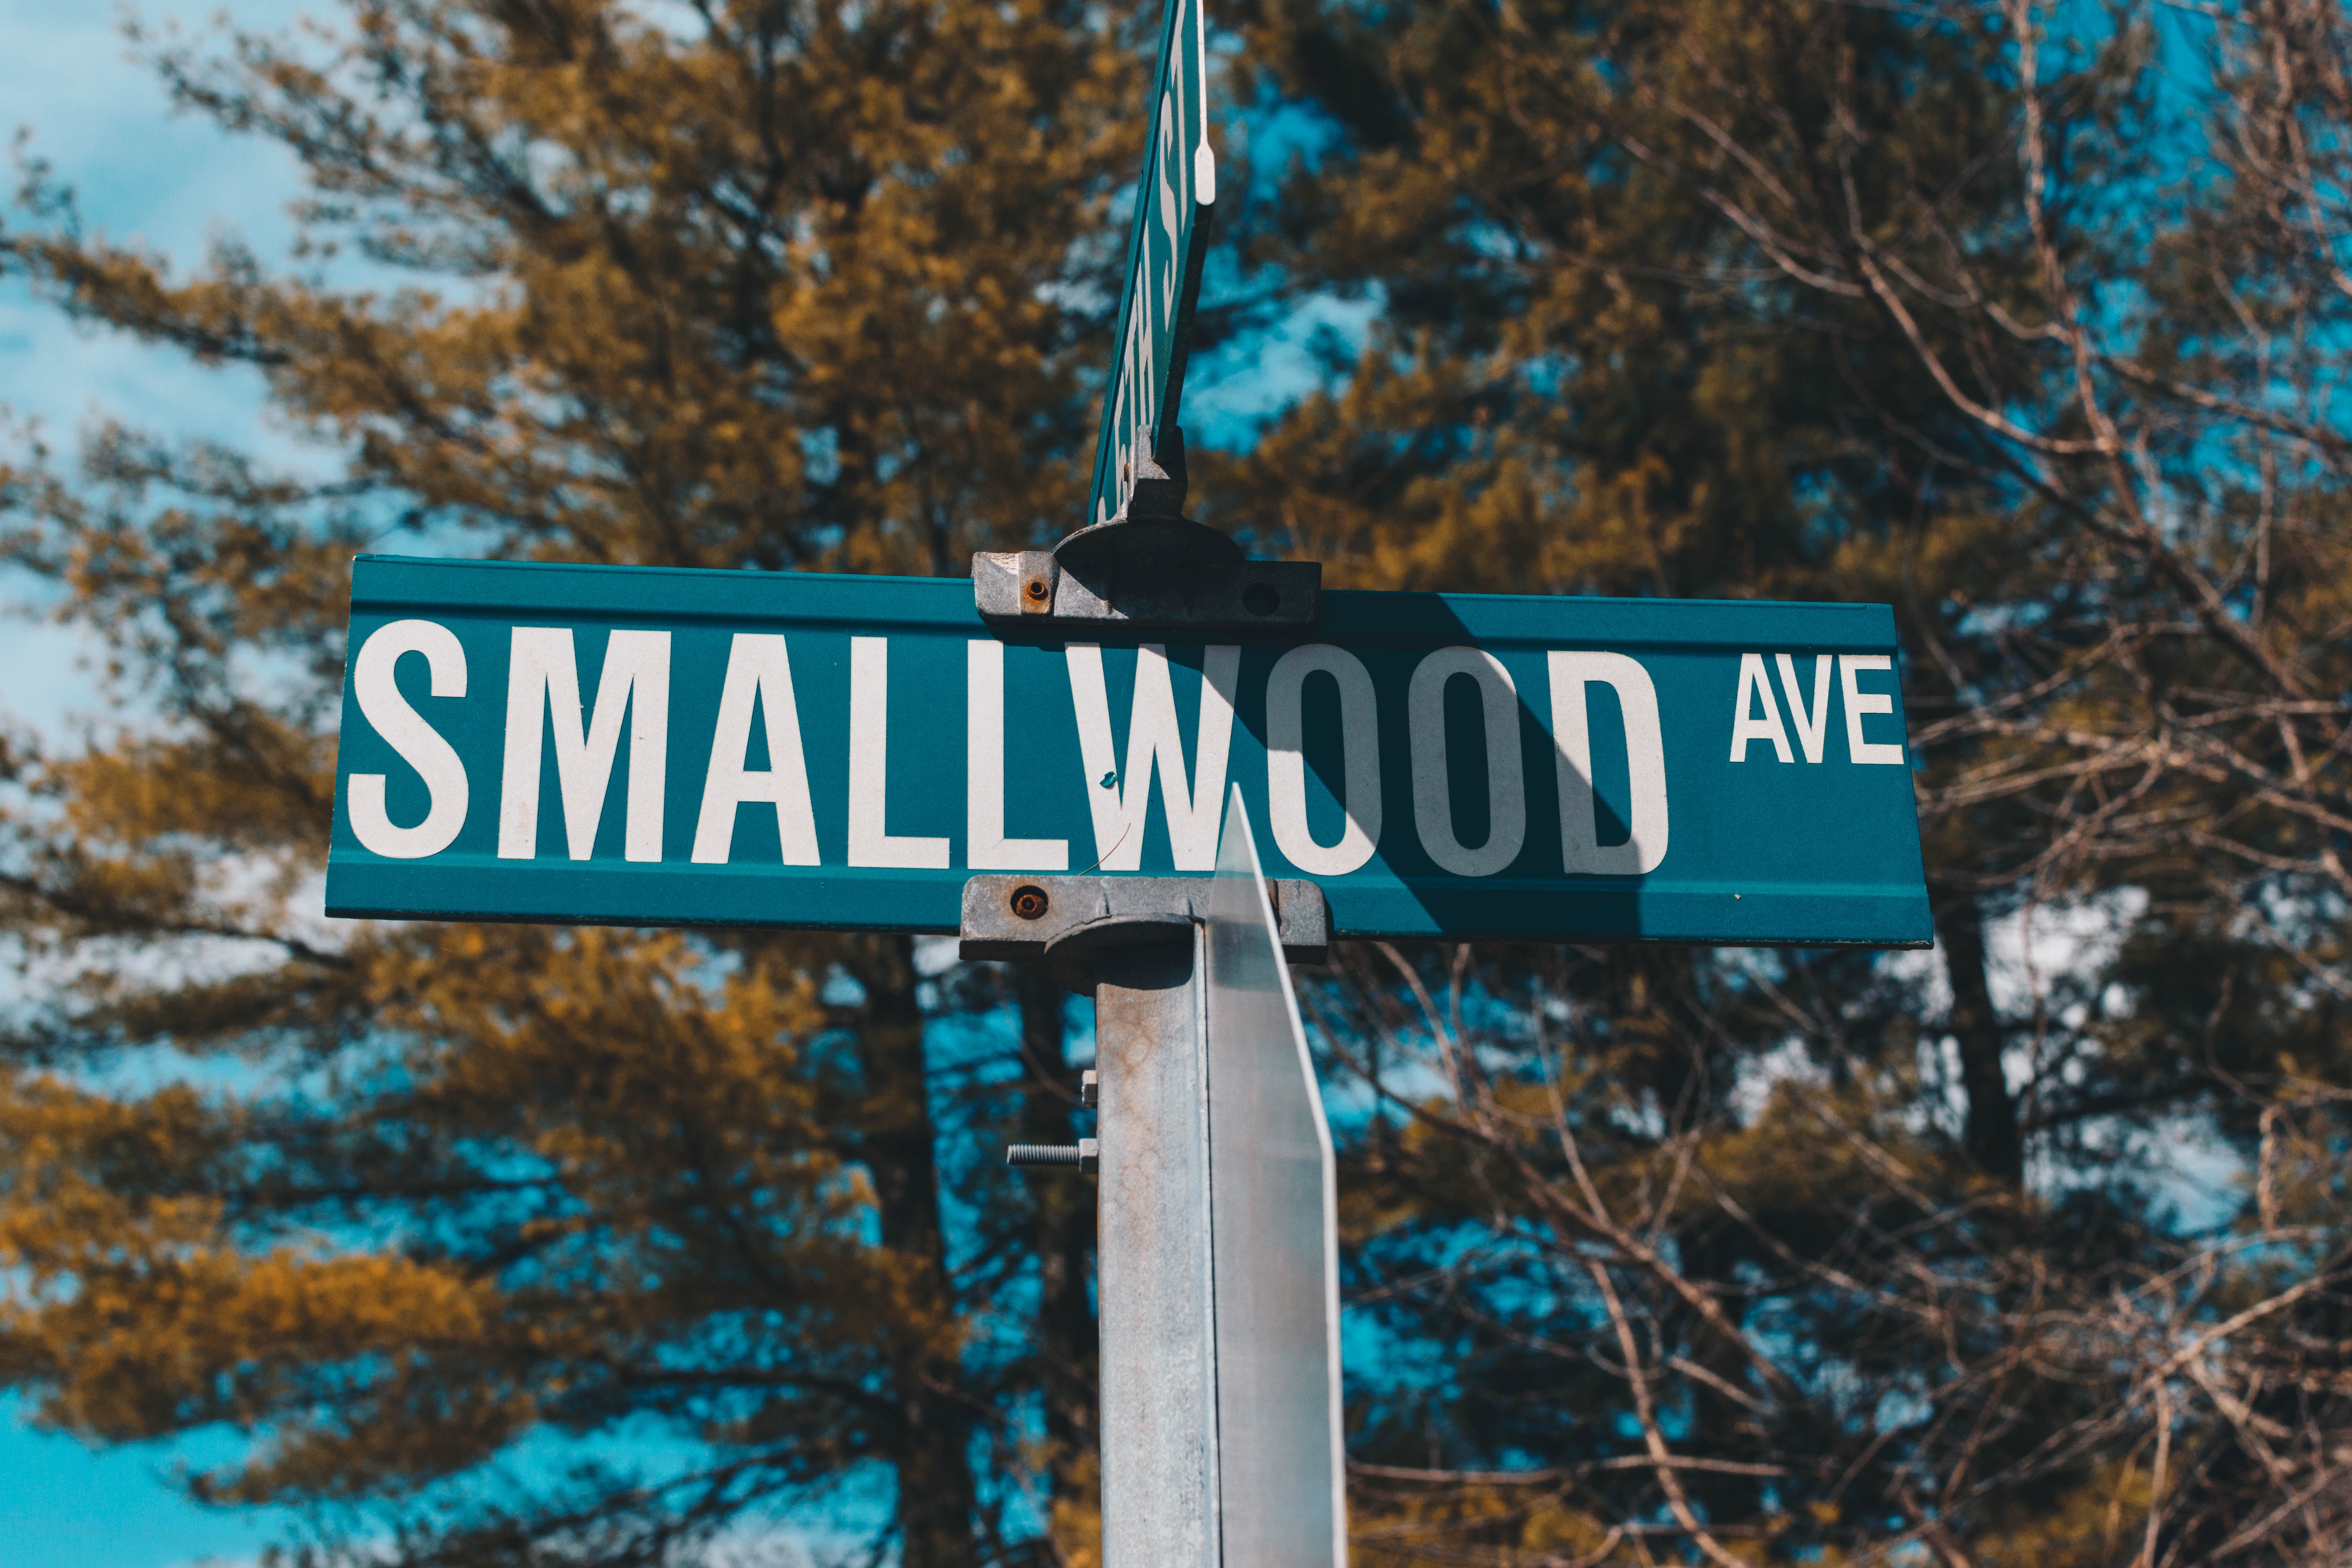 Small Wood AVE